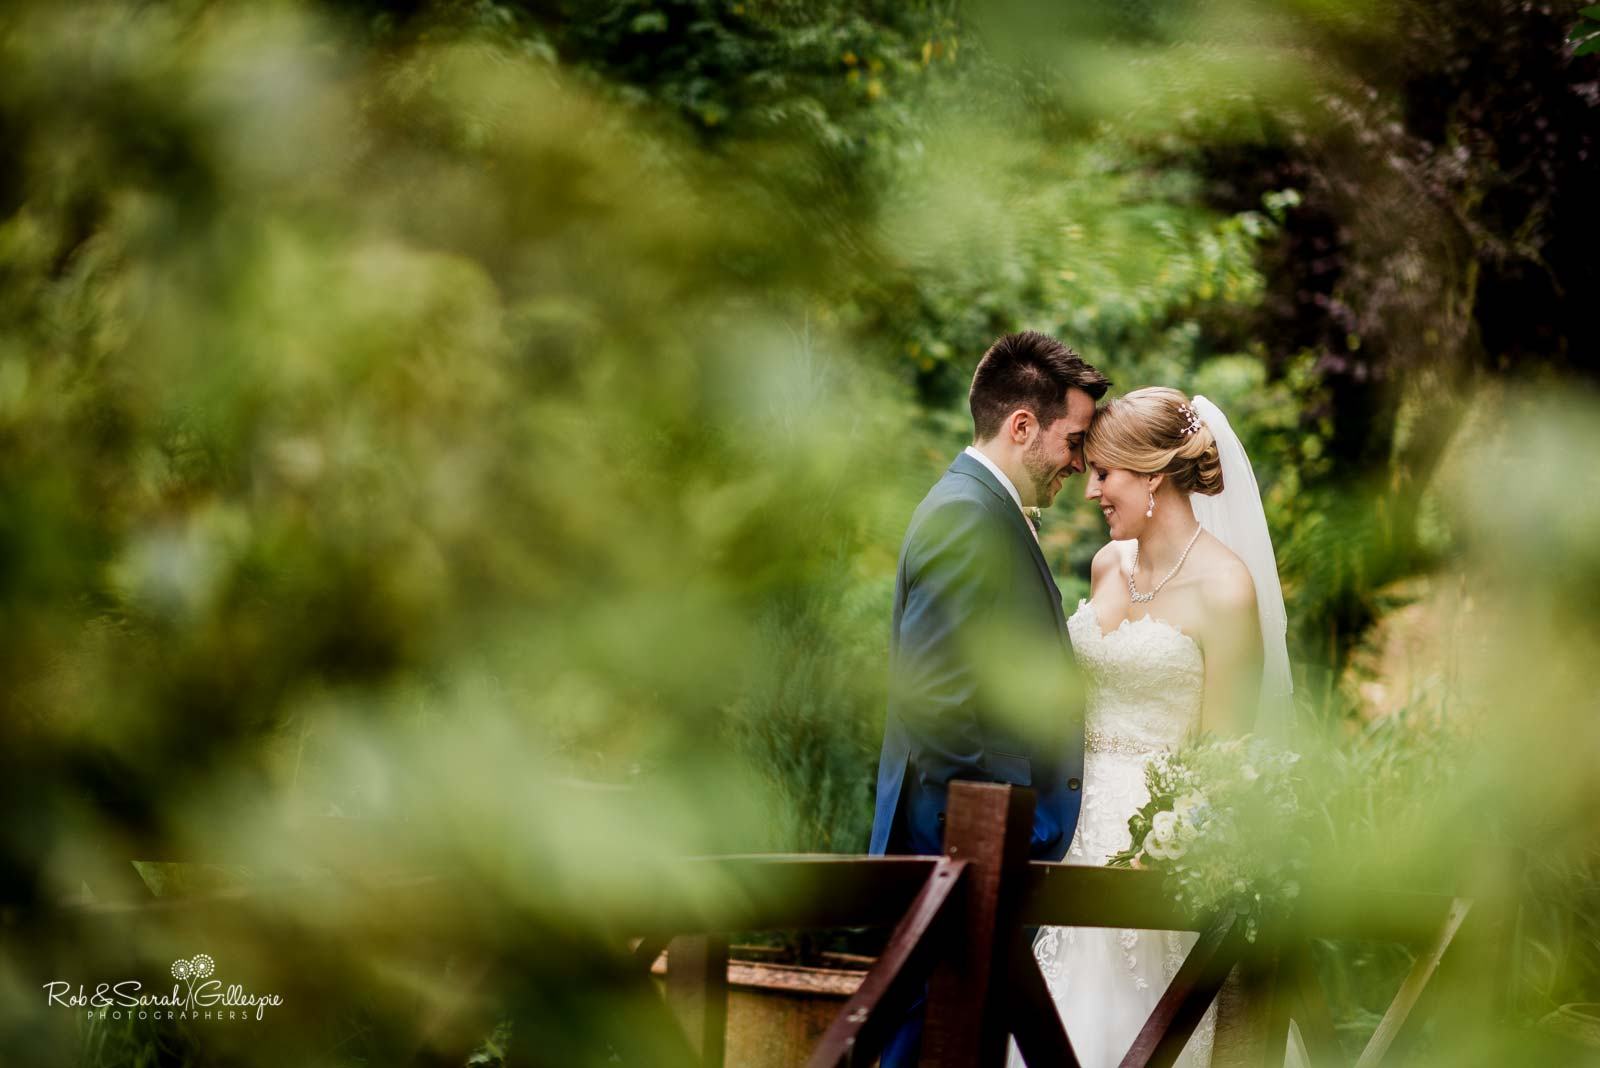 The Mill Barns natural and relaxed wedding photography